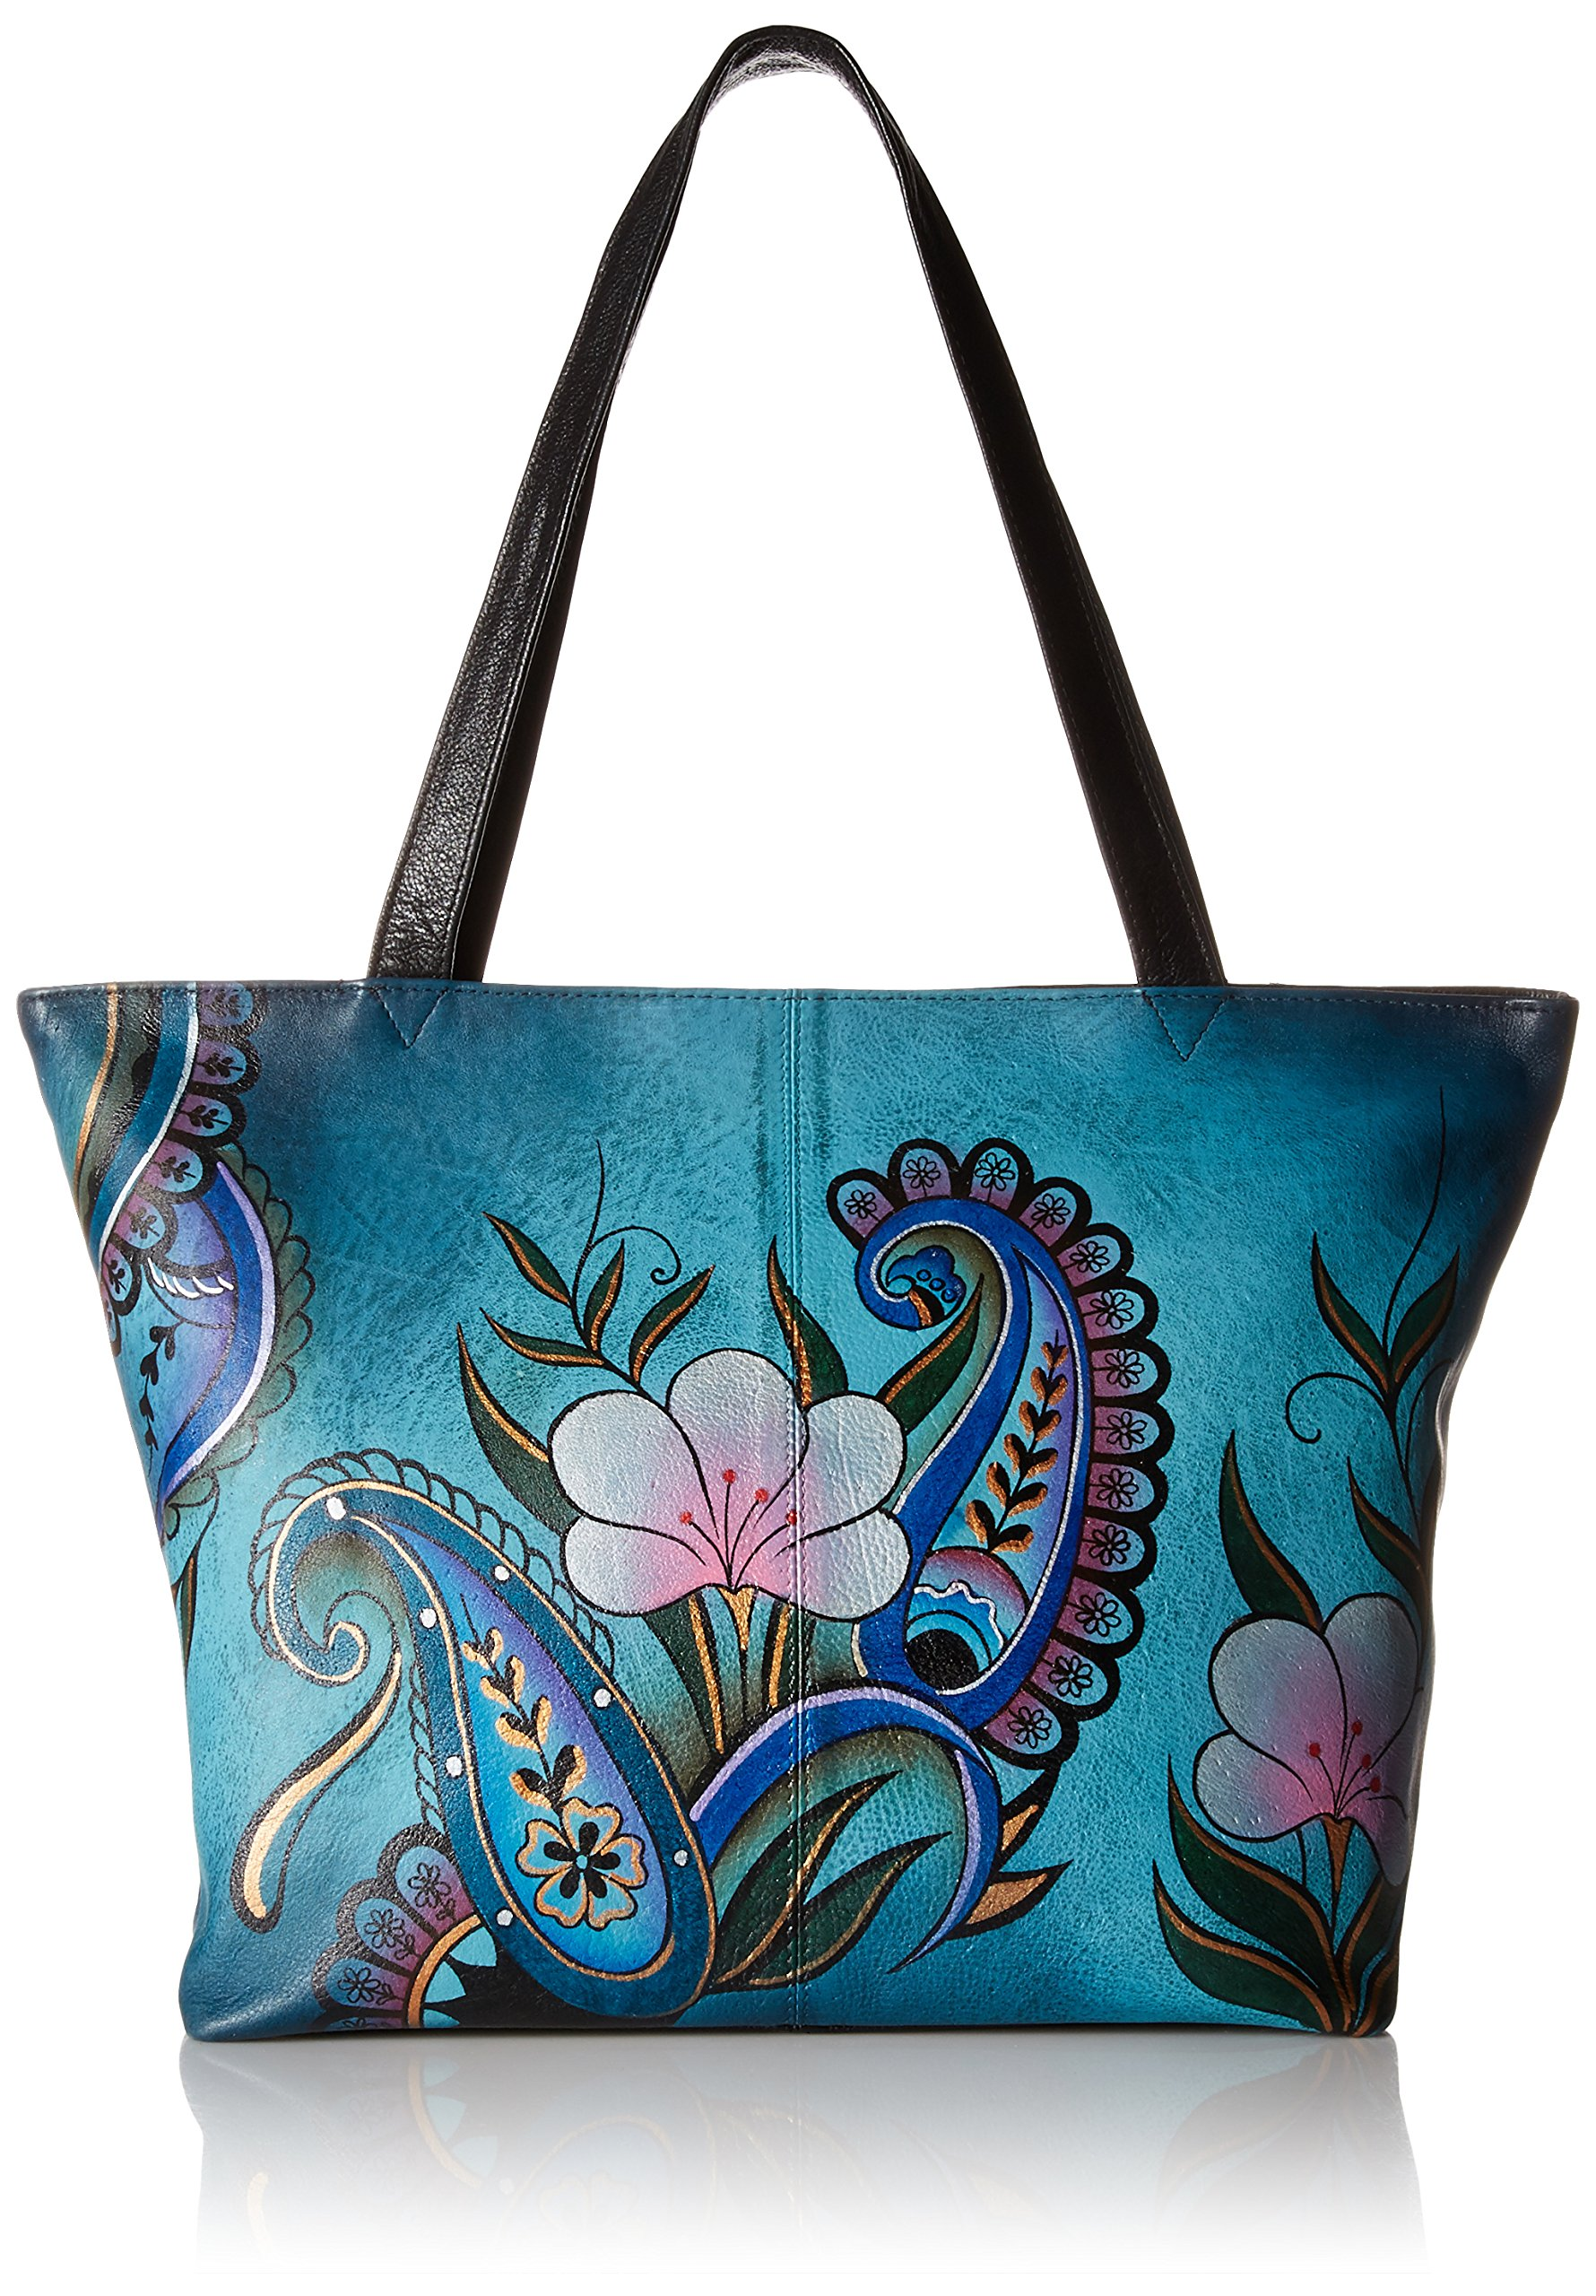 Anuschka Anna Handpainted Leather Large Tote, Denim Paisley Floral